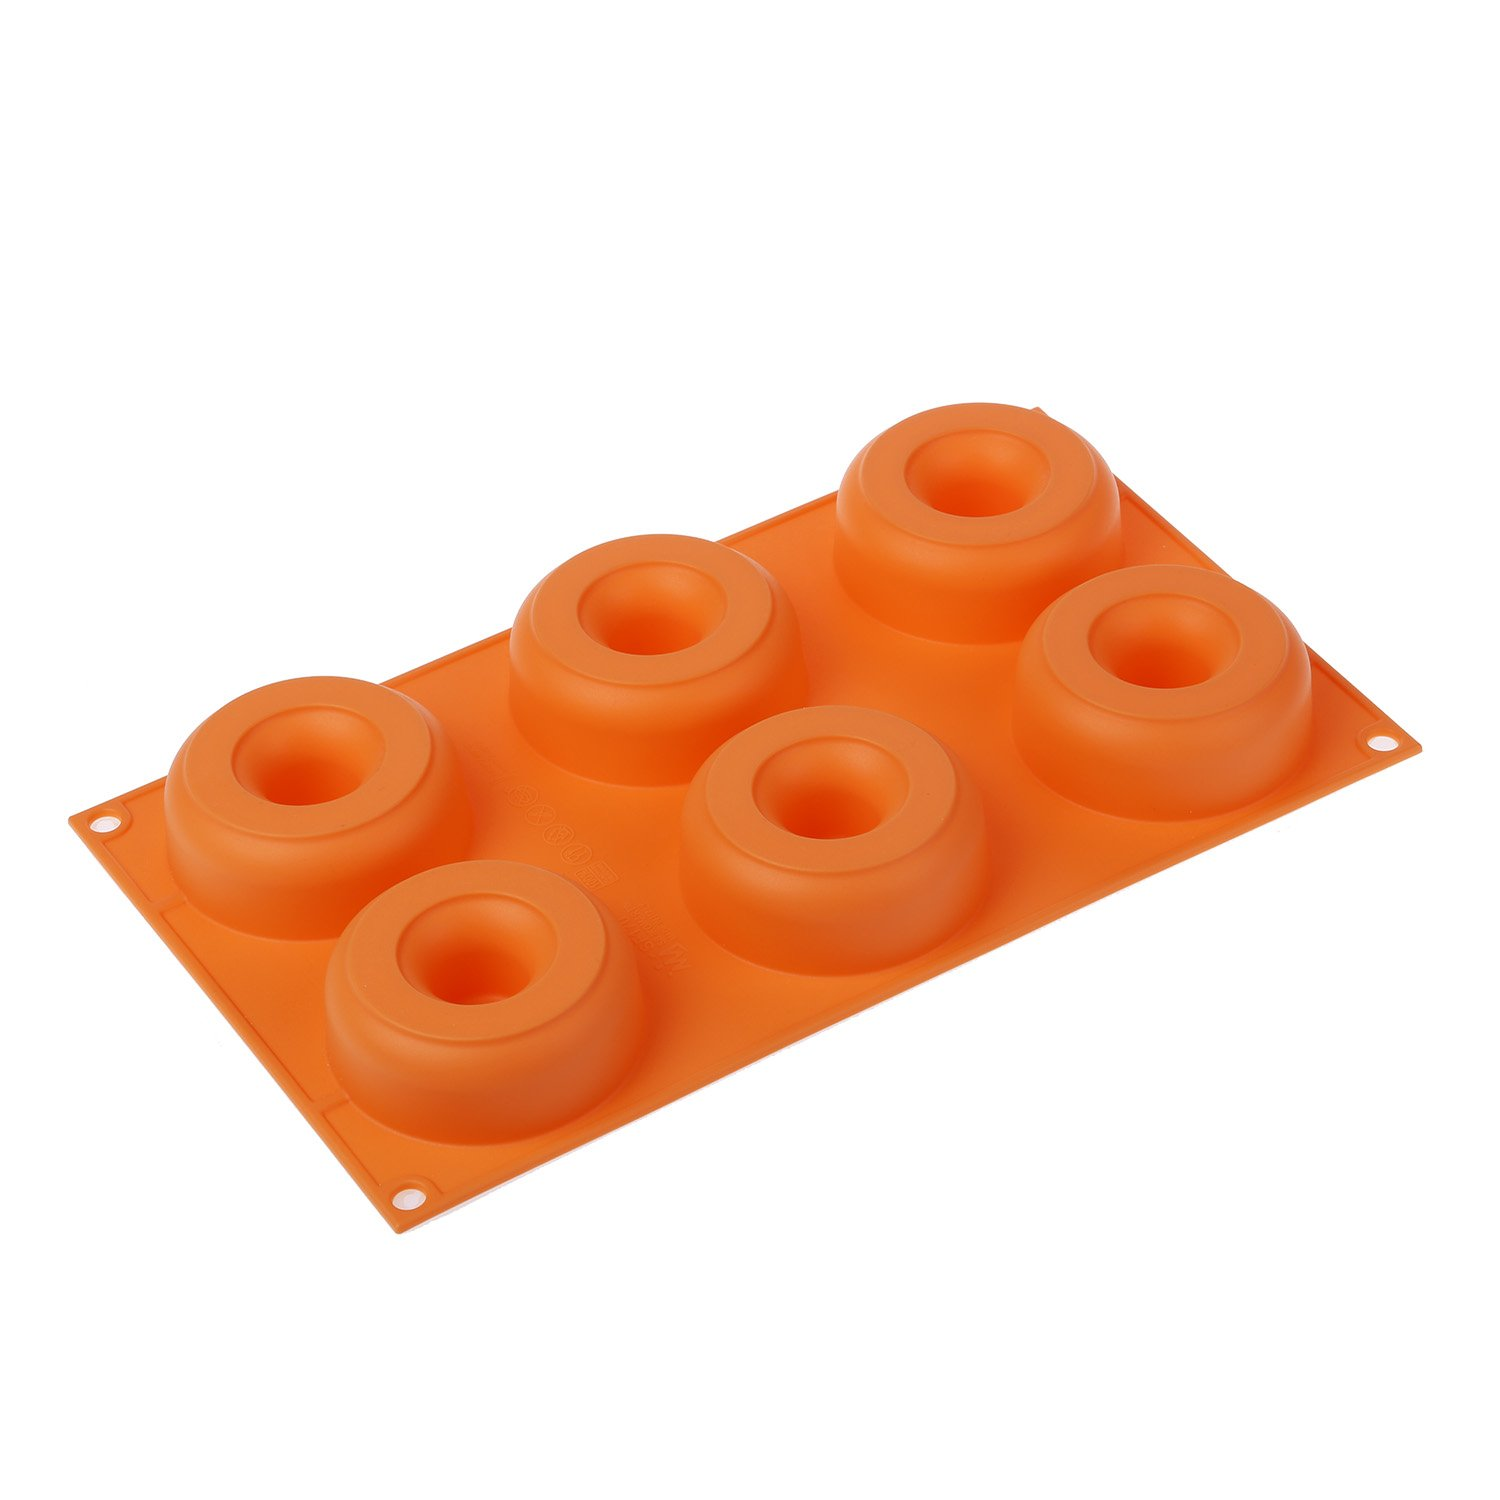 Silikomart Silicone Fancy and Function Bakeware Collection Multi-Shape Cake Pan, Donuts by Silikomart (Image #4)